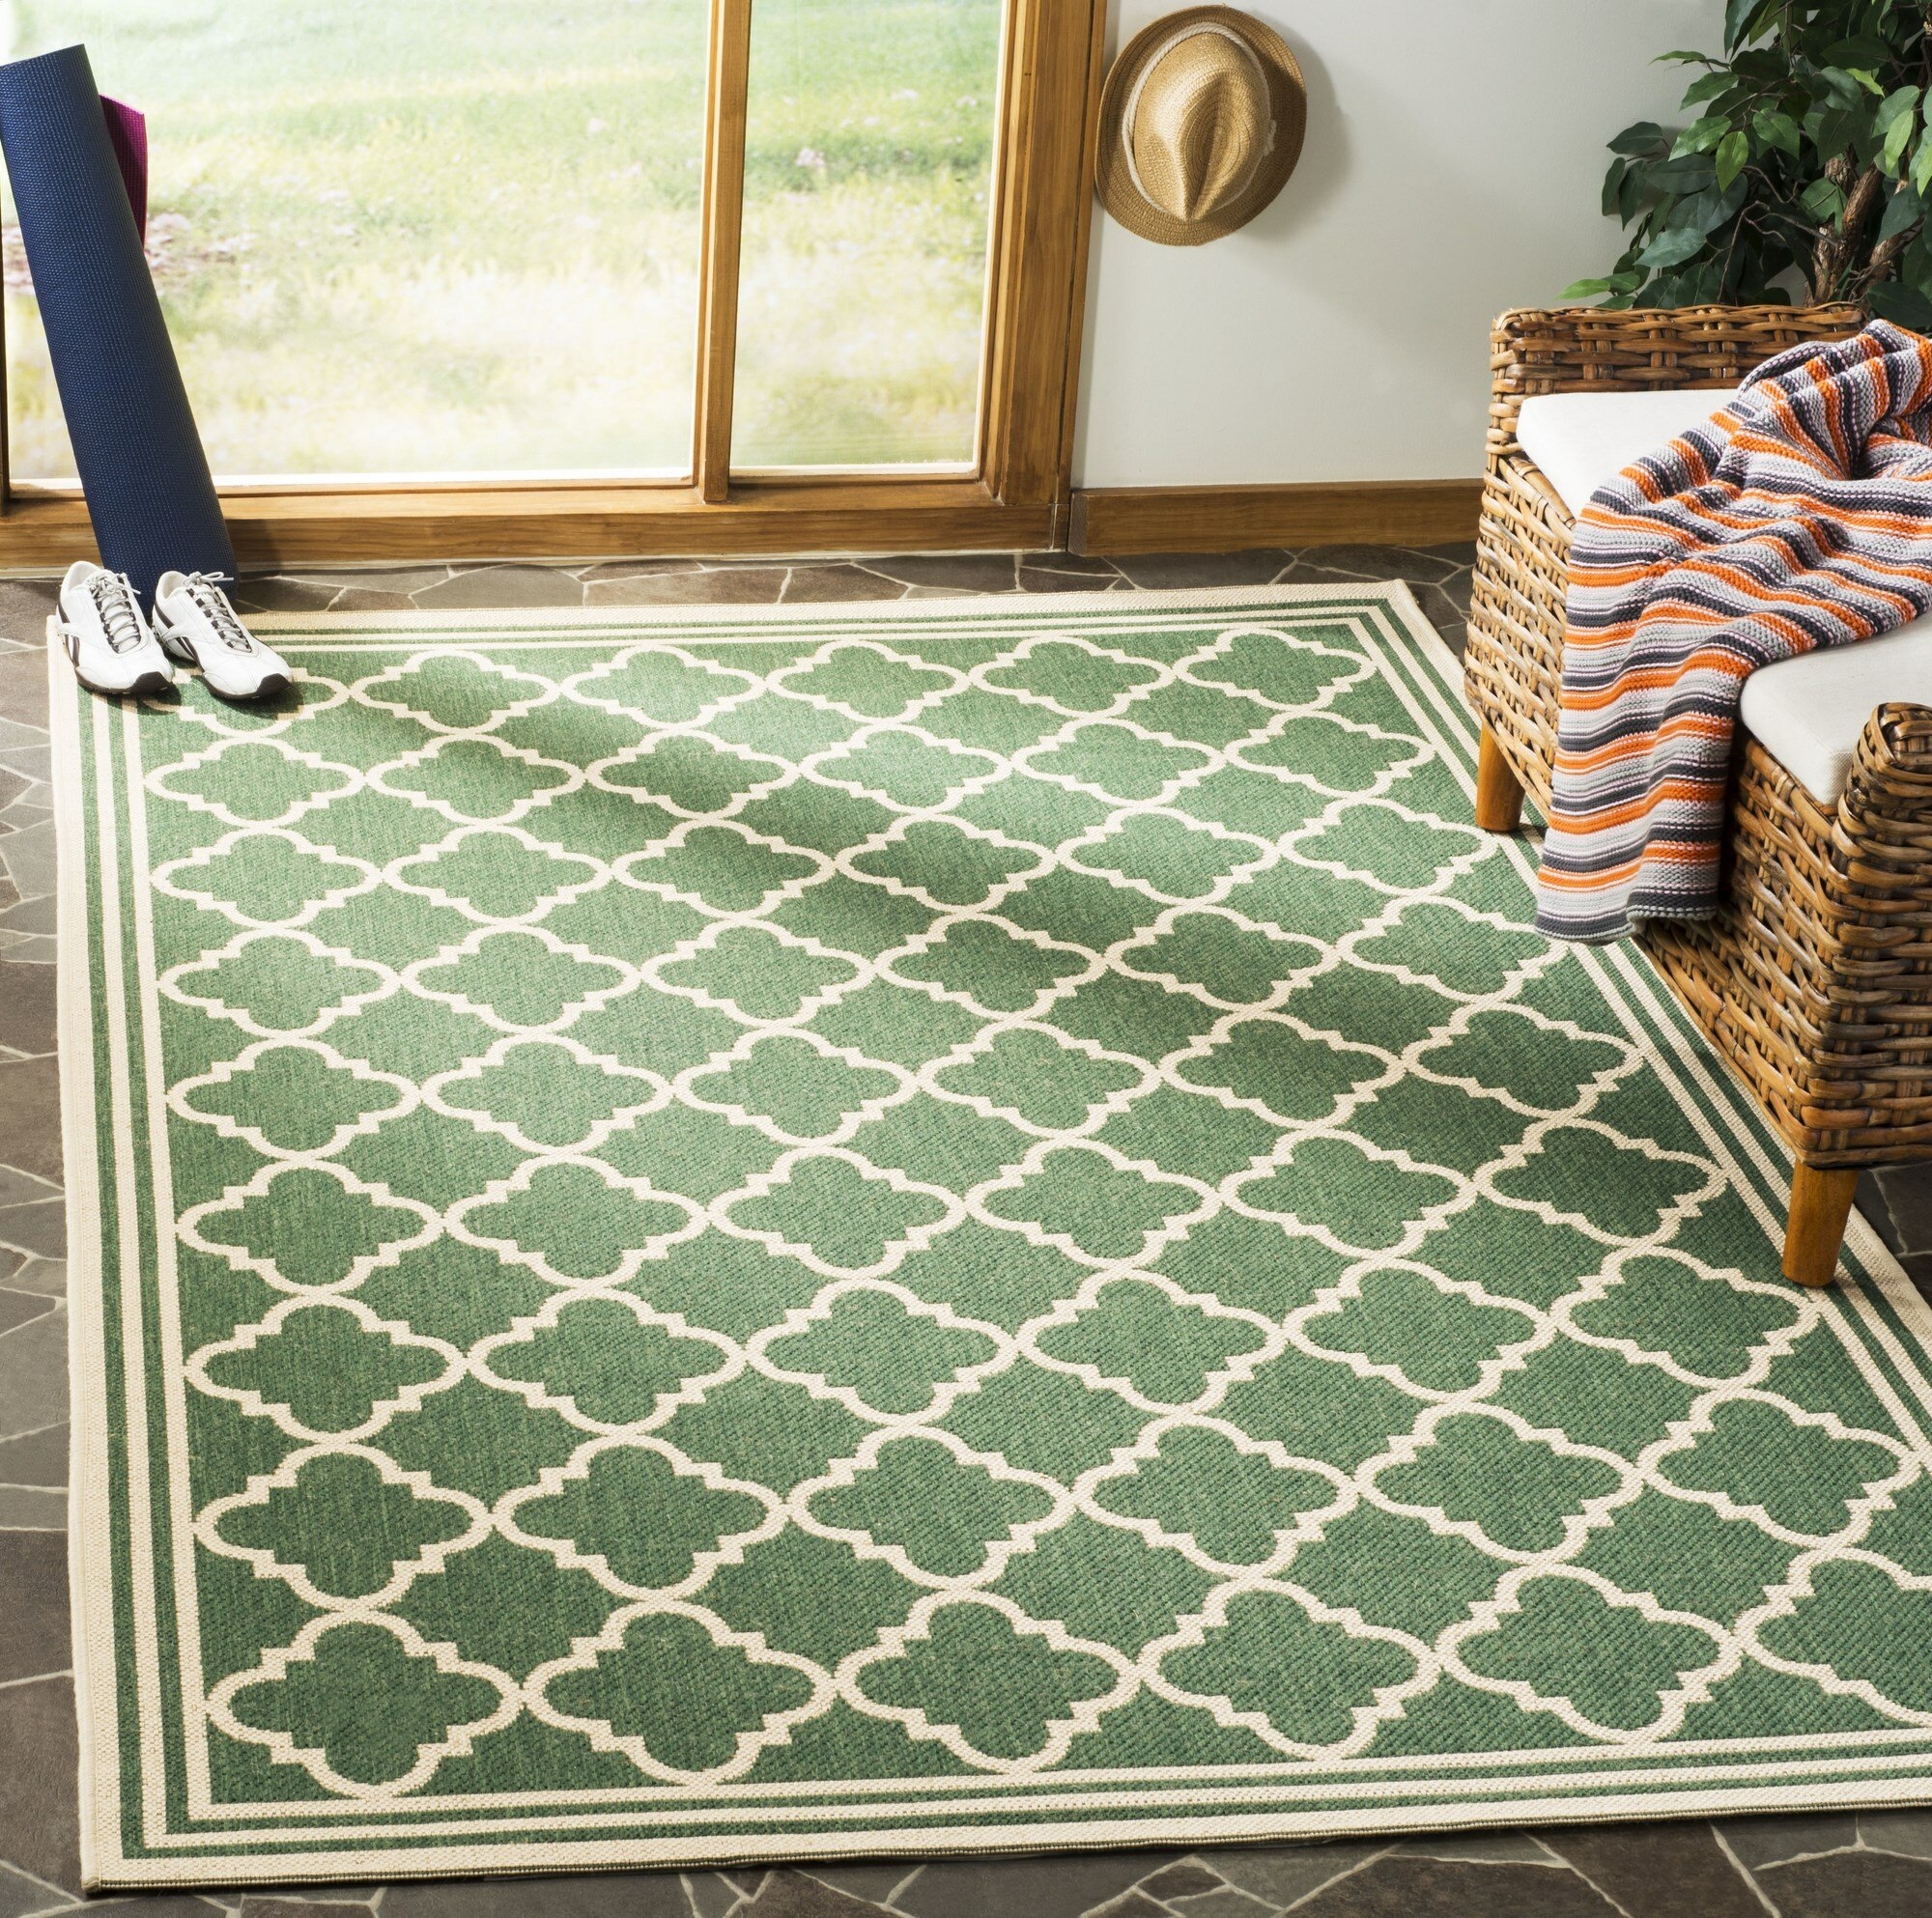 Darby Home Co Berardi Green Cream Area Rug Reviews Wayfair